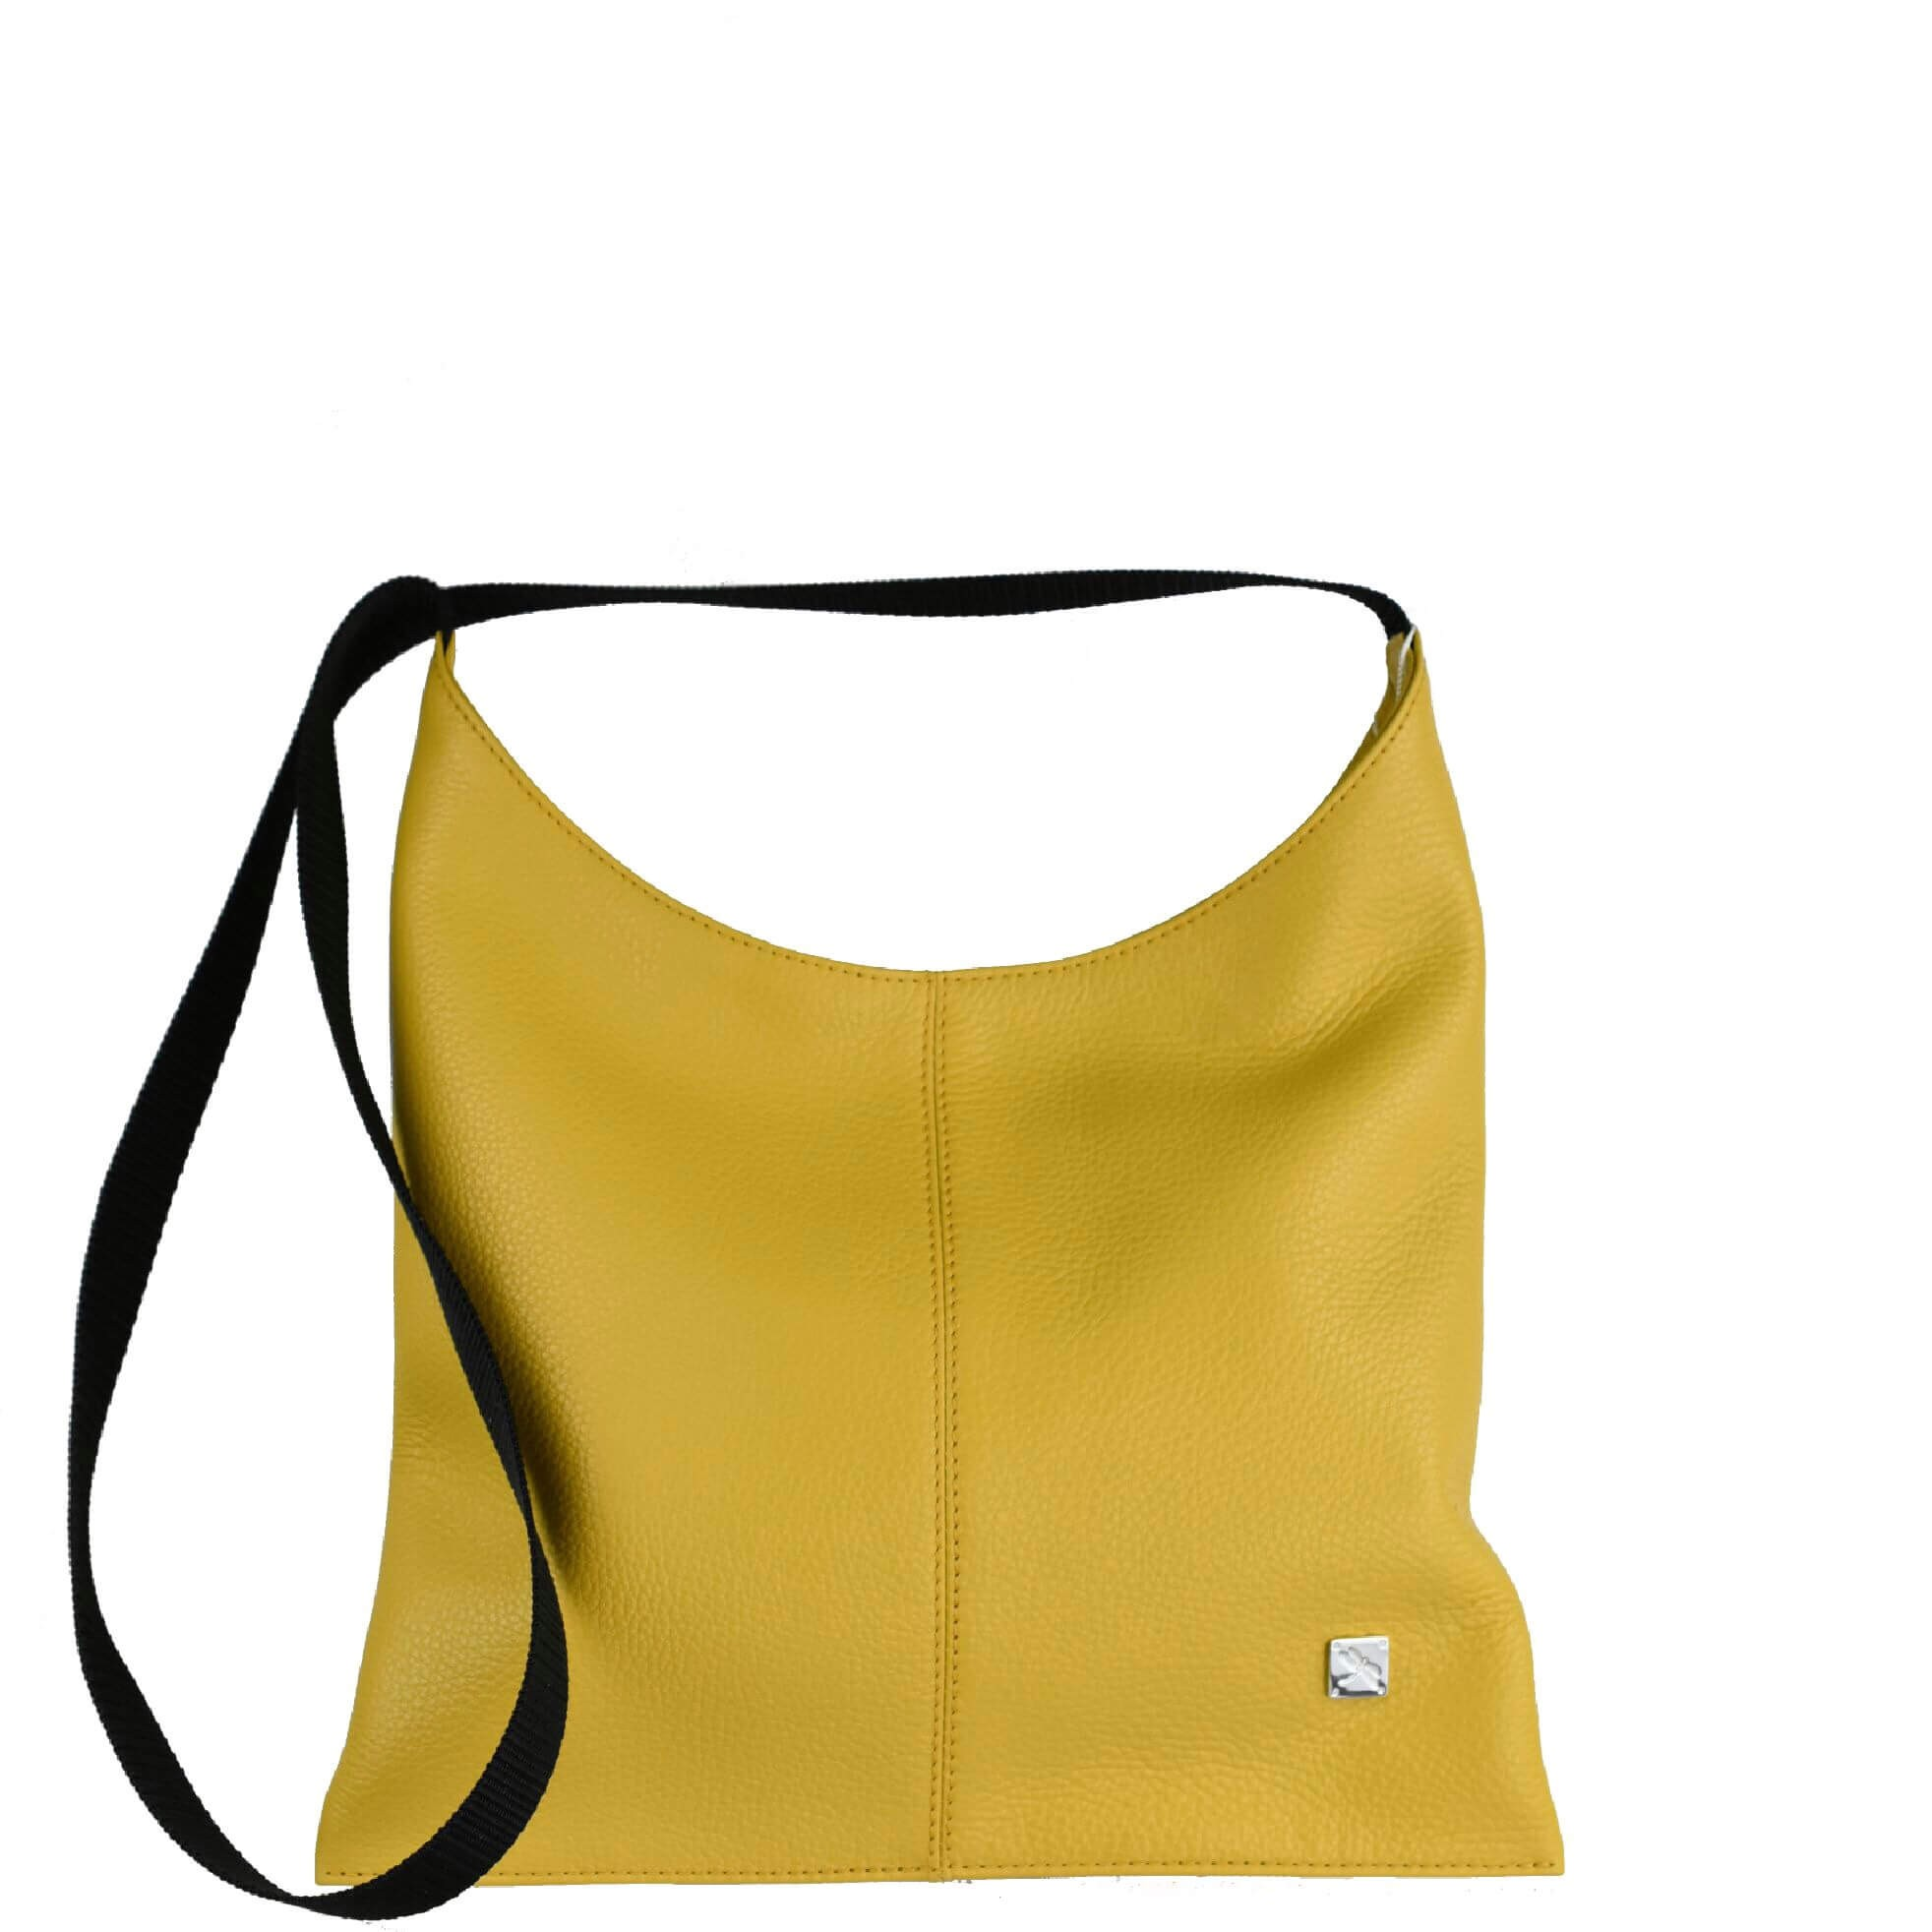 Yellow Leather Crossover Bag. Deia